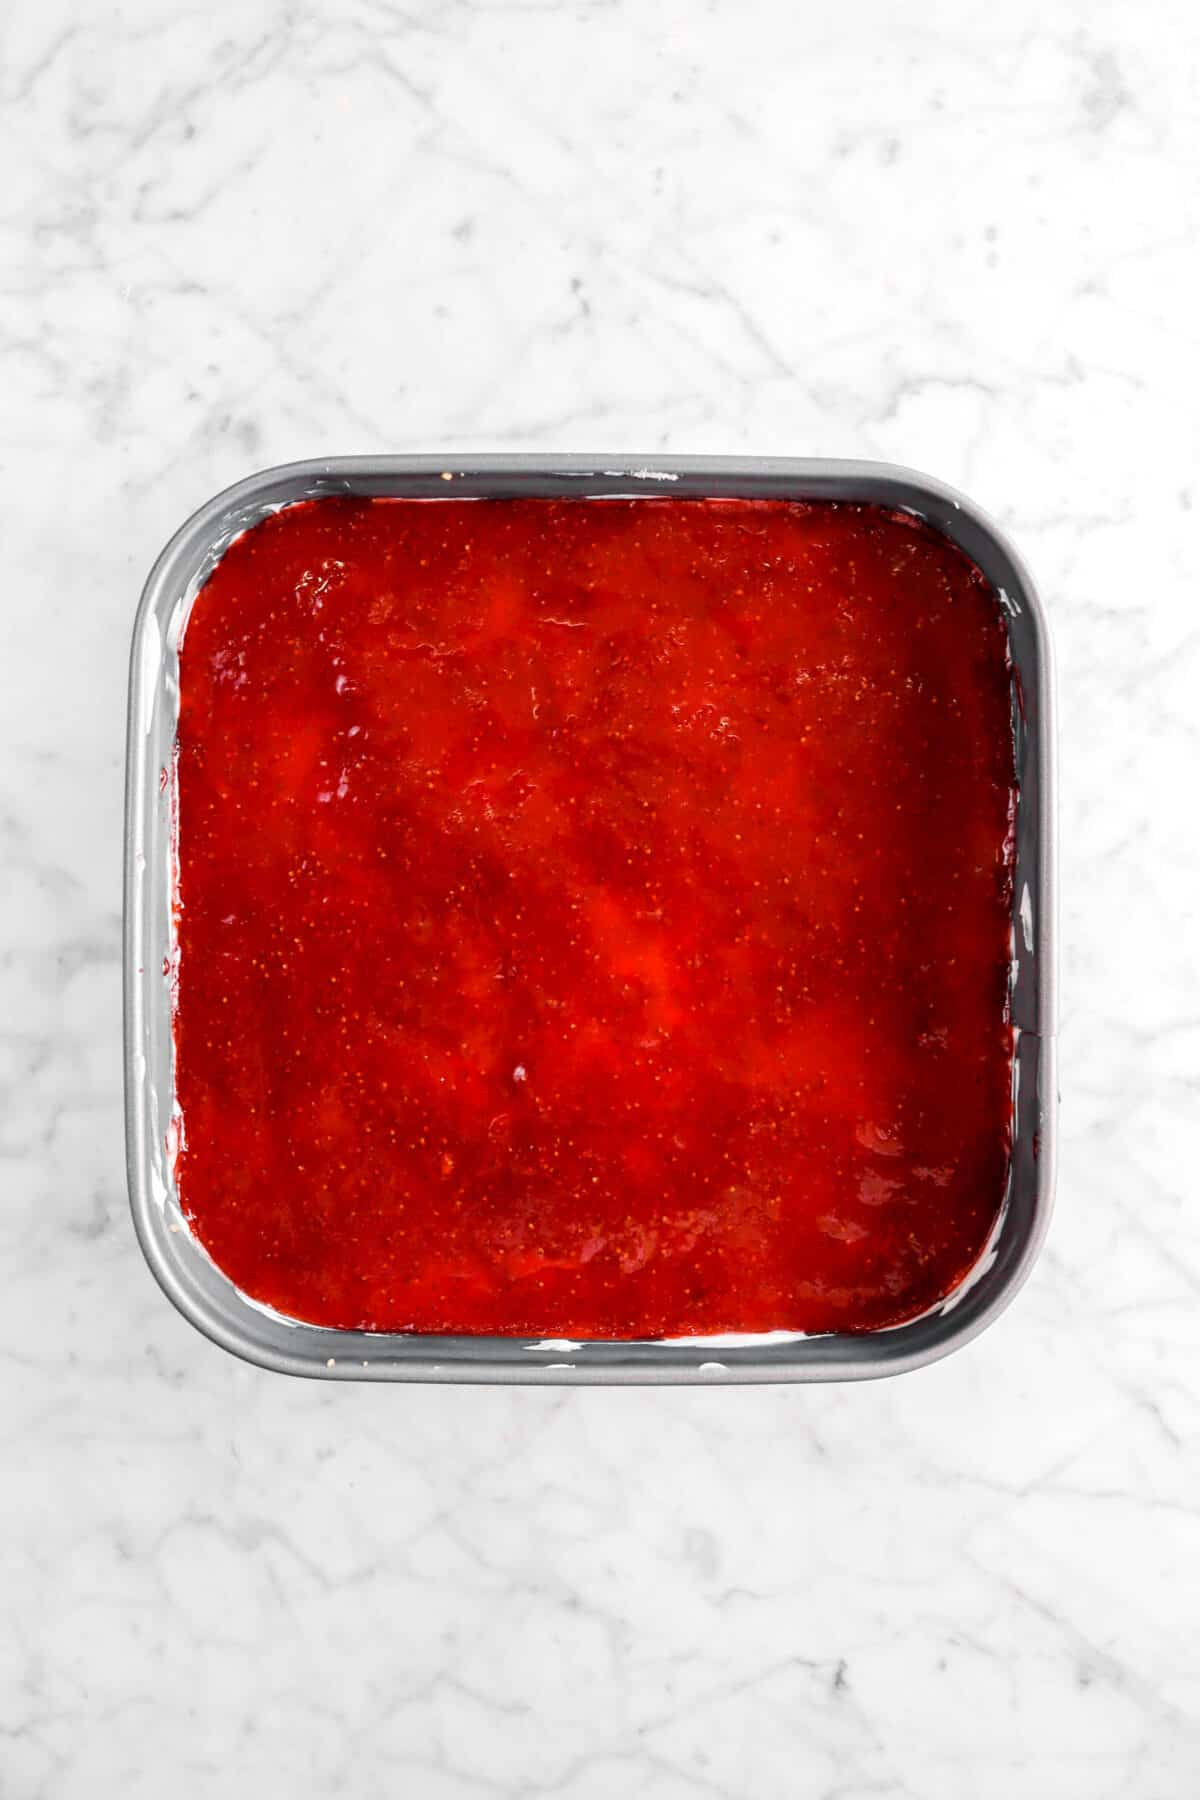 strawberry jam added on top of cheesecake